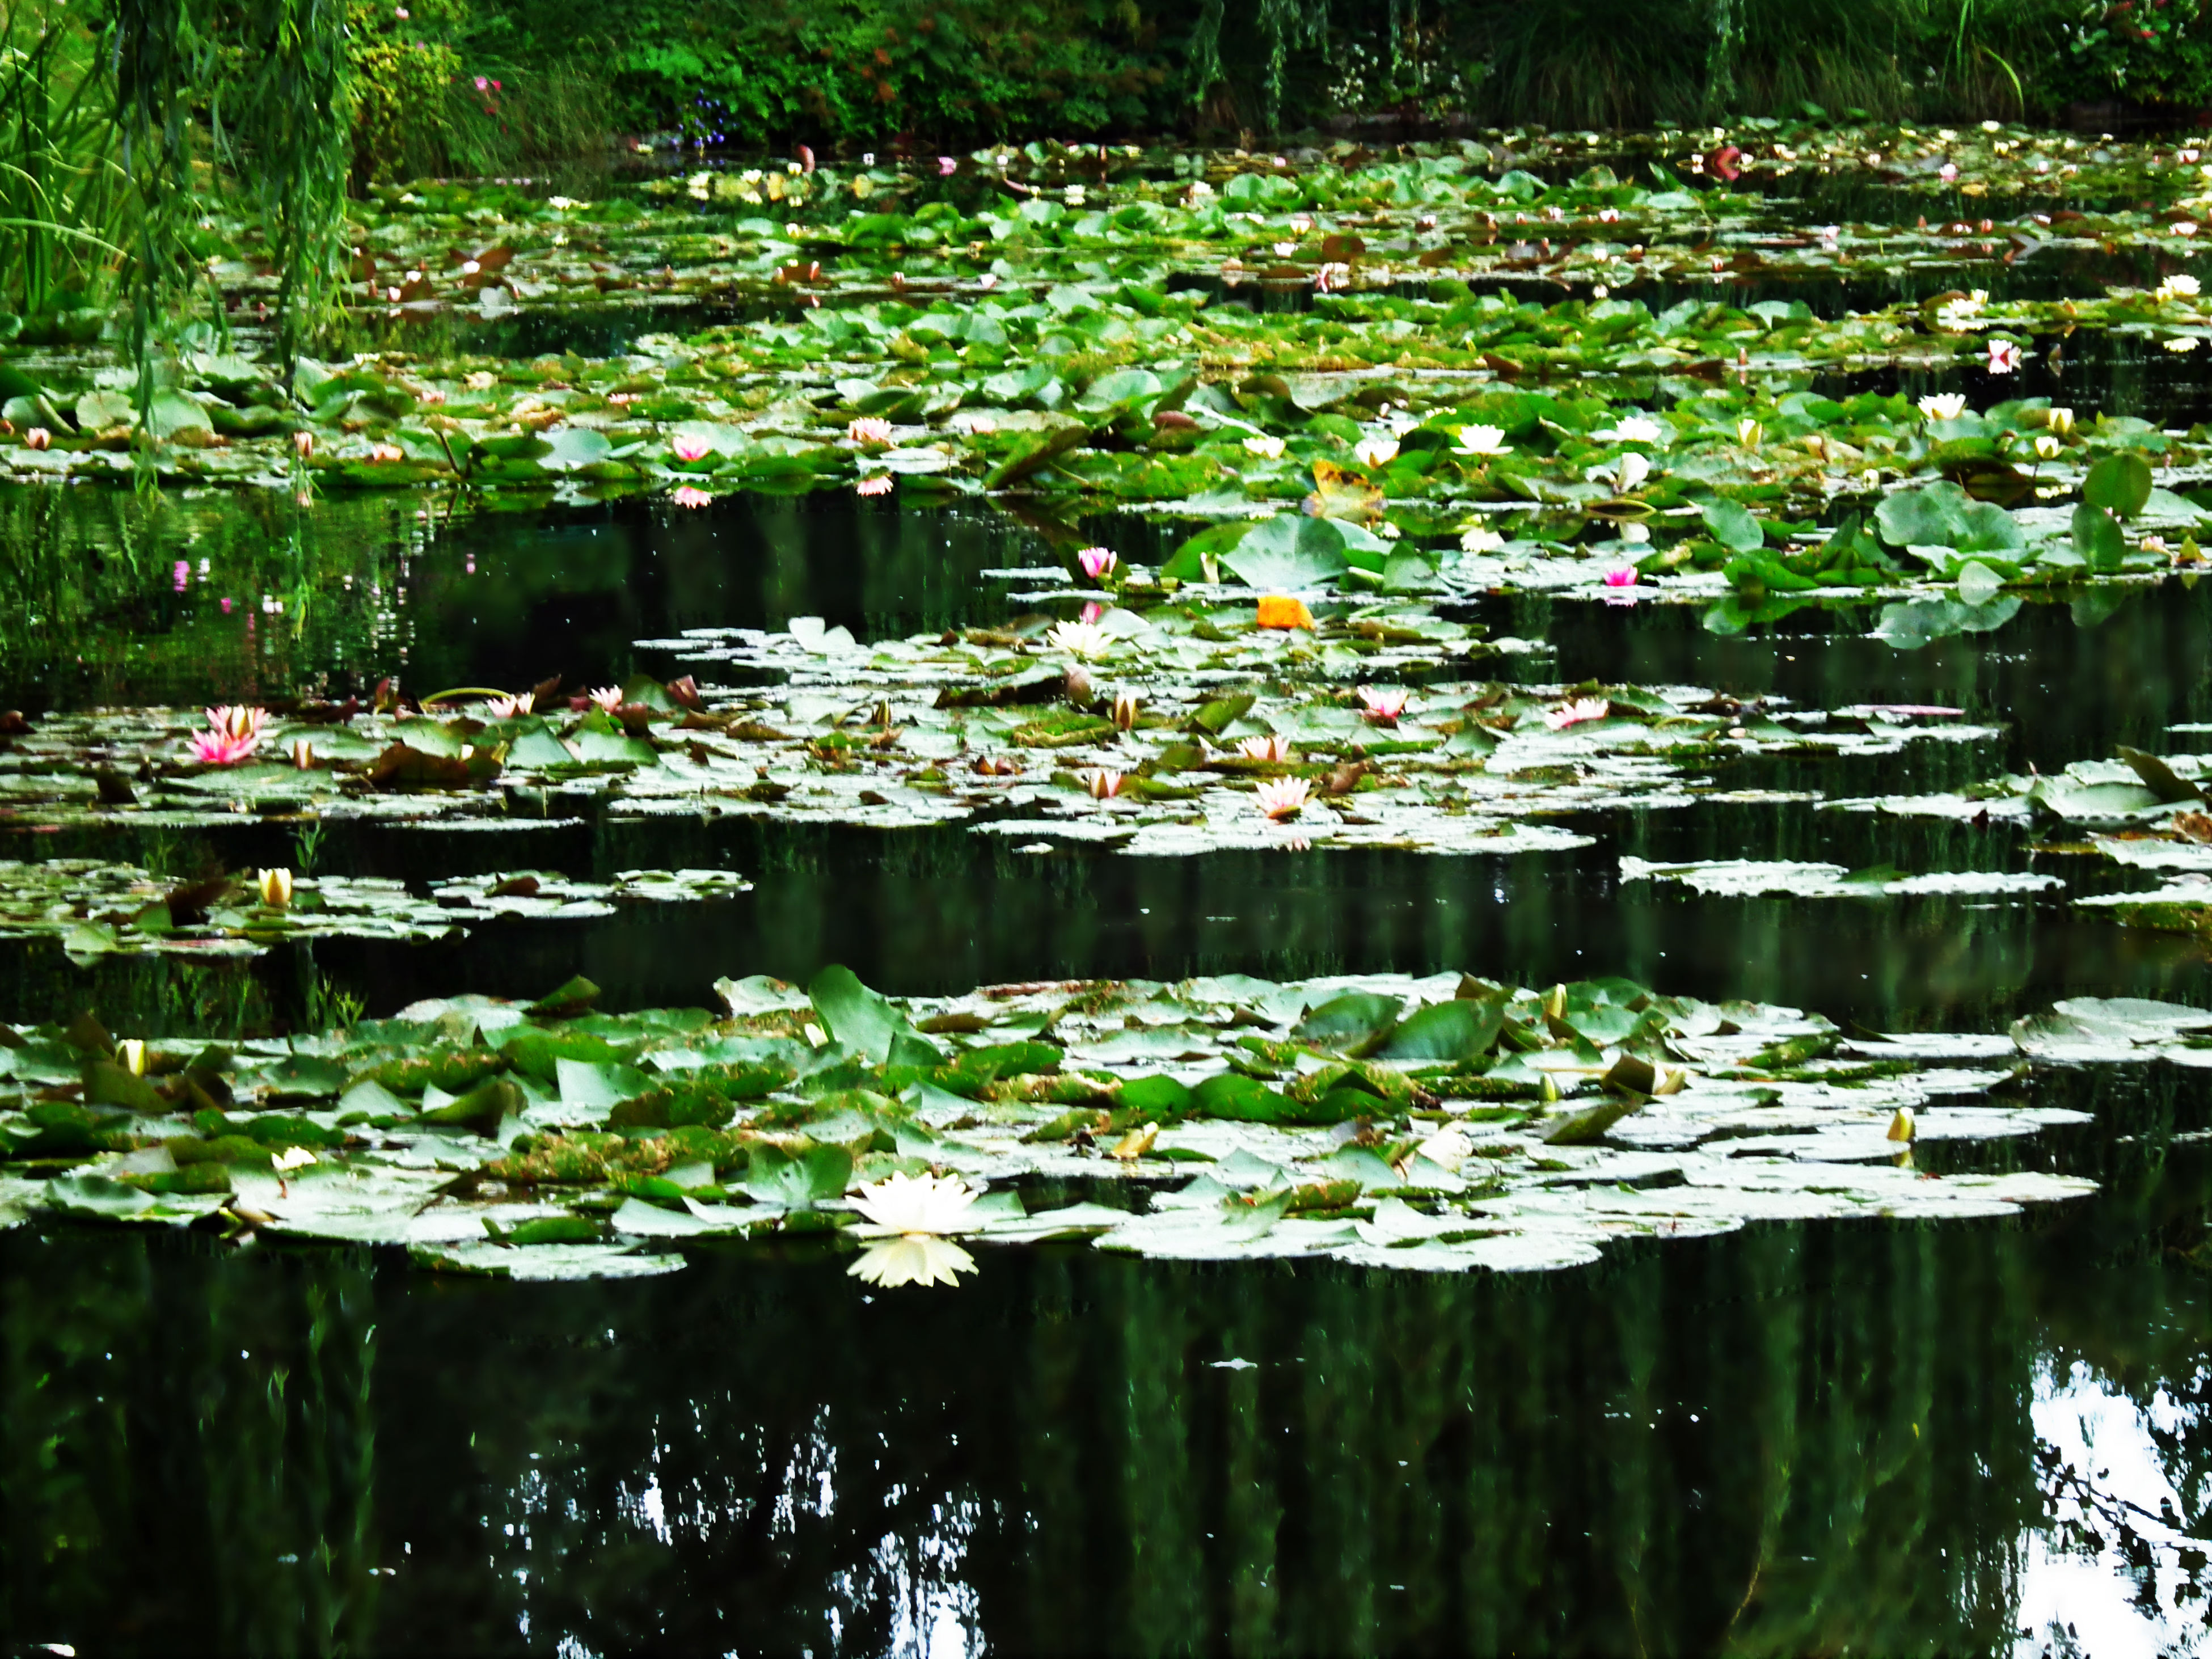 water, flower, reflection, pond, growth, water lily, beauty in nature, plant, floating on water, leaf, freshness, lake, nature, green color, tranquility, waterfront, fragility, lotus water lily, tranquil scene, outdoors